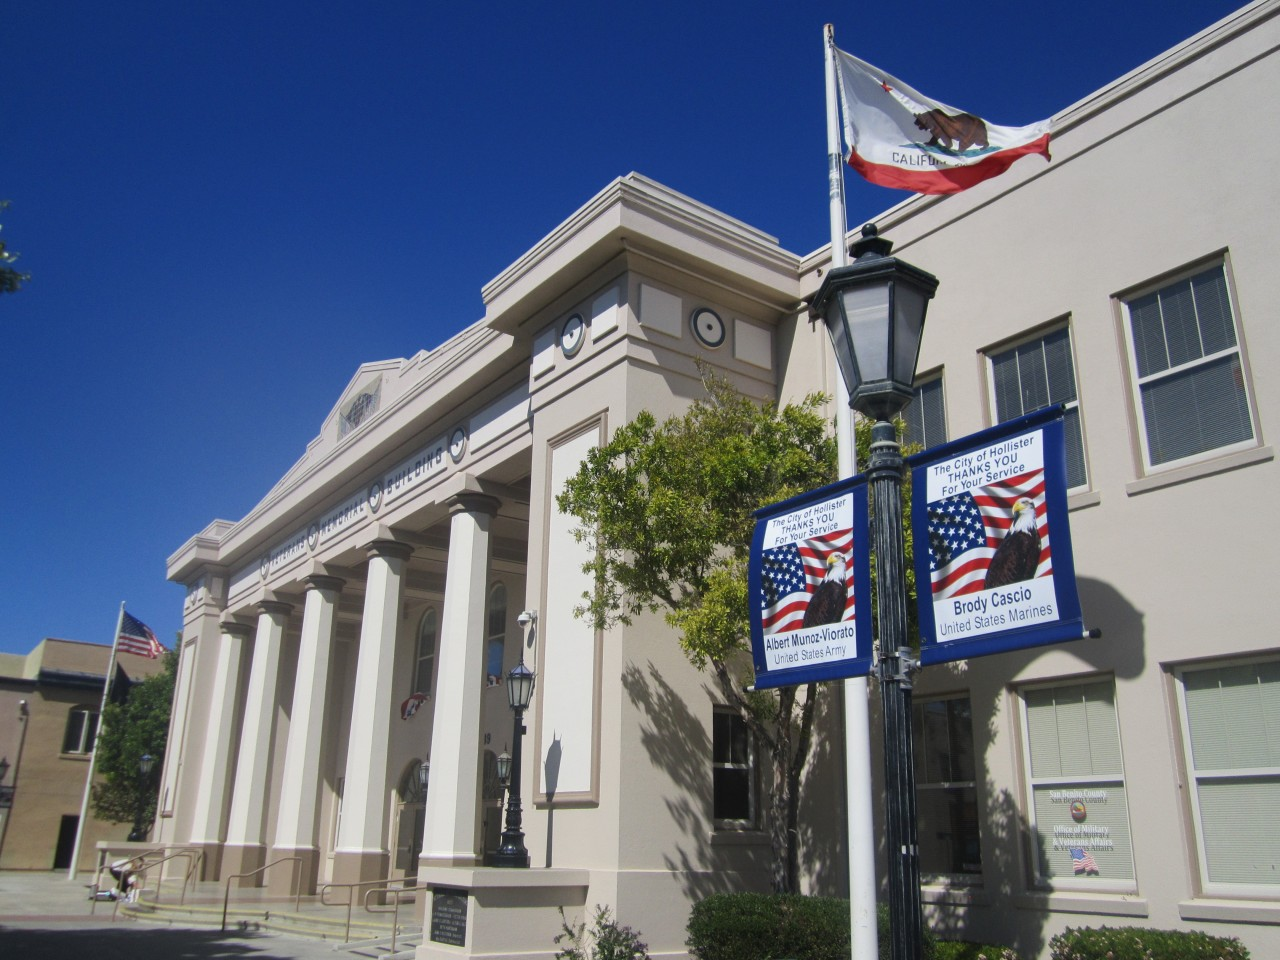 The local VFW have banners hung in downtown Hollister in support of active military members. Photo by Becky Bonner.